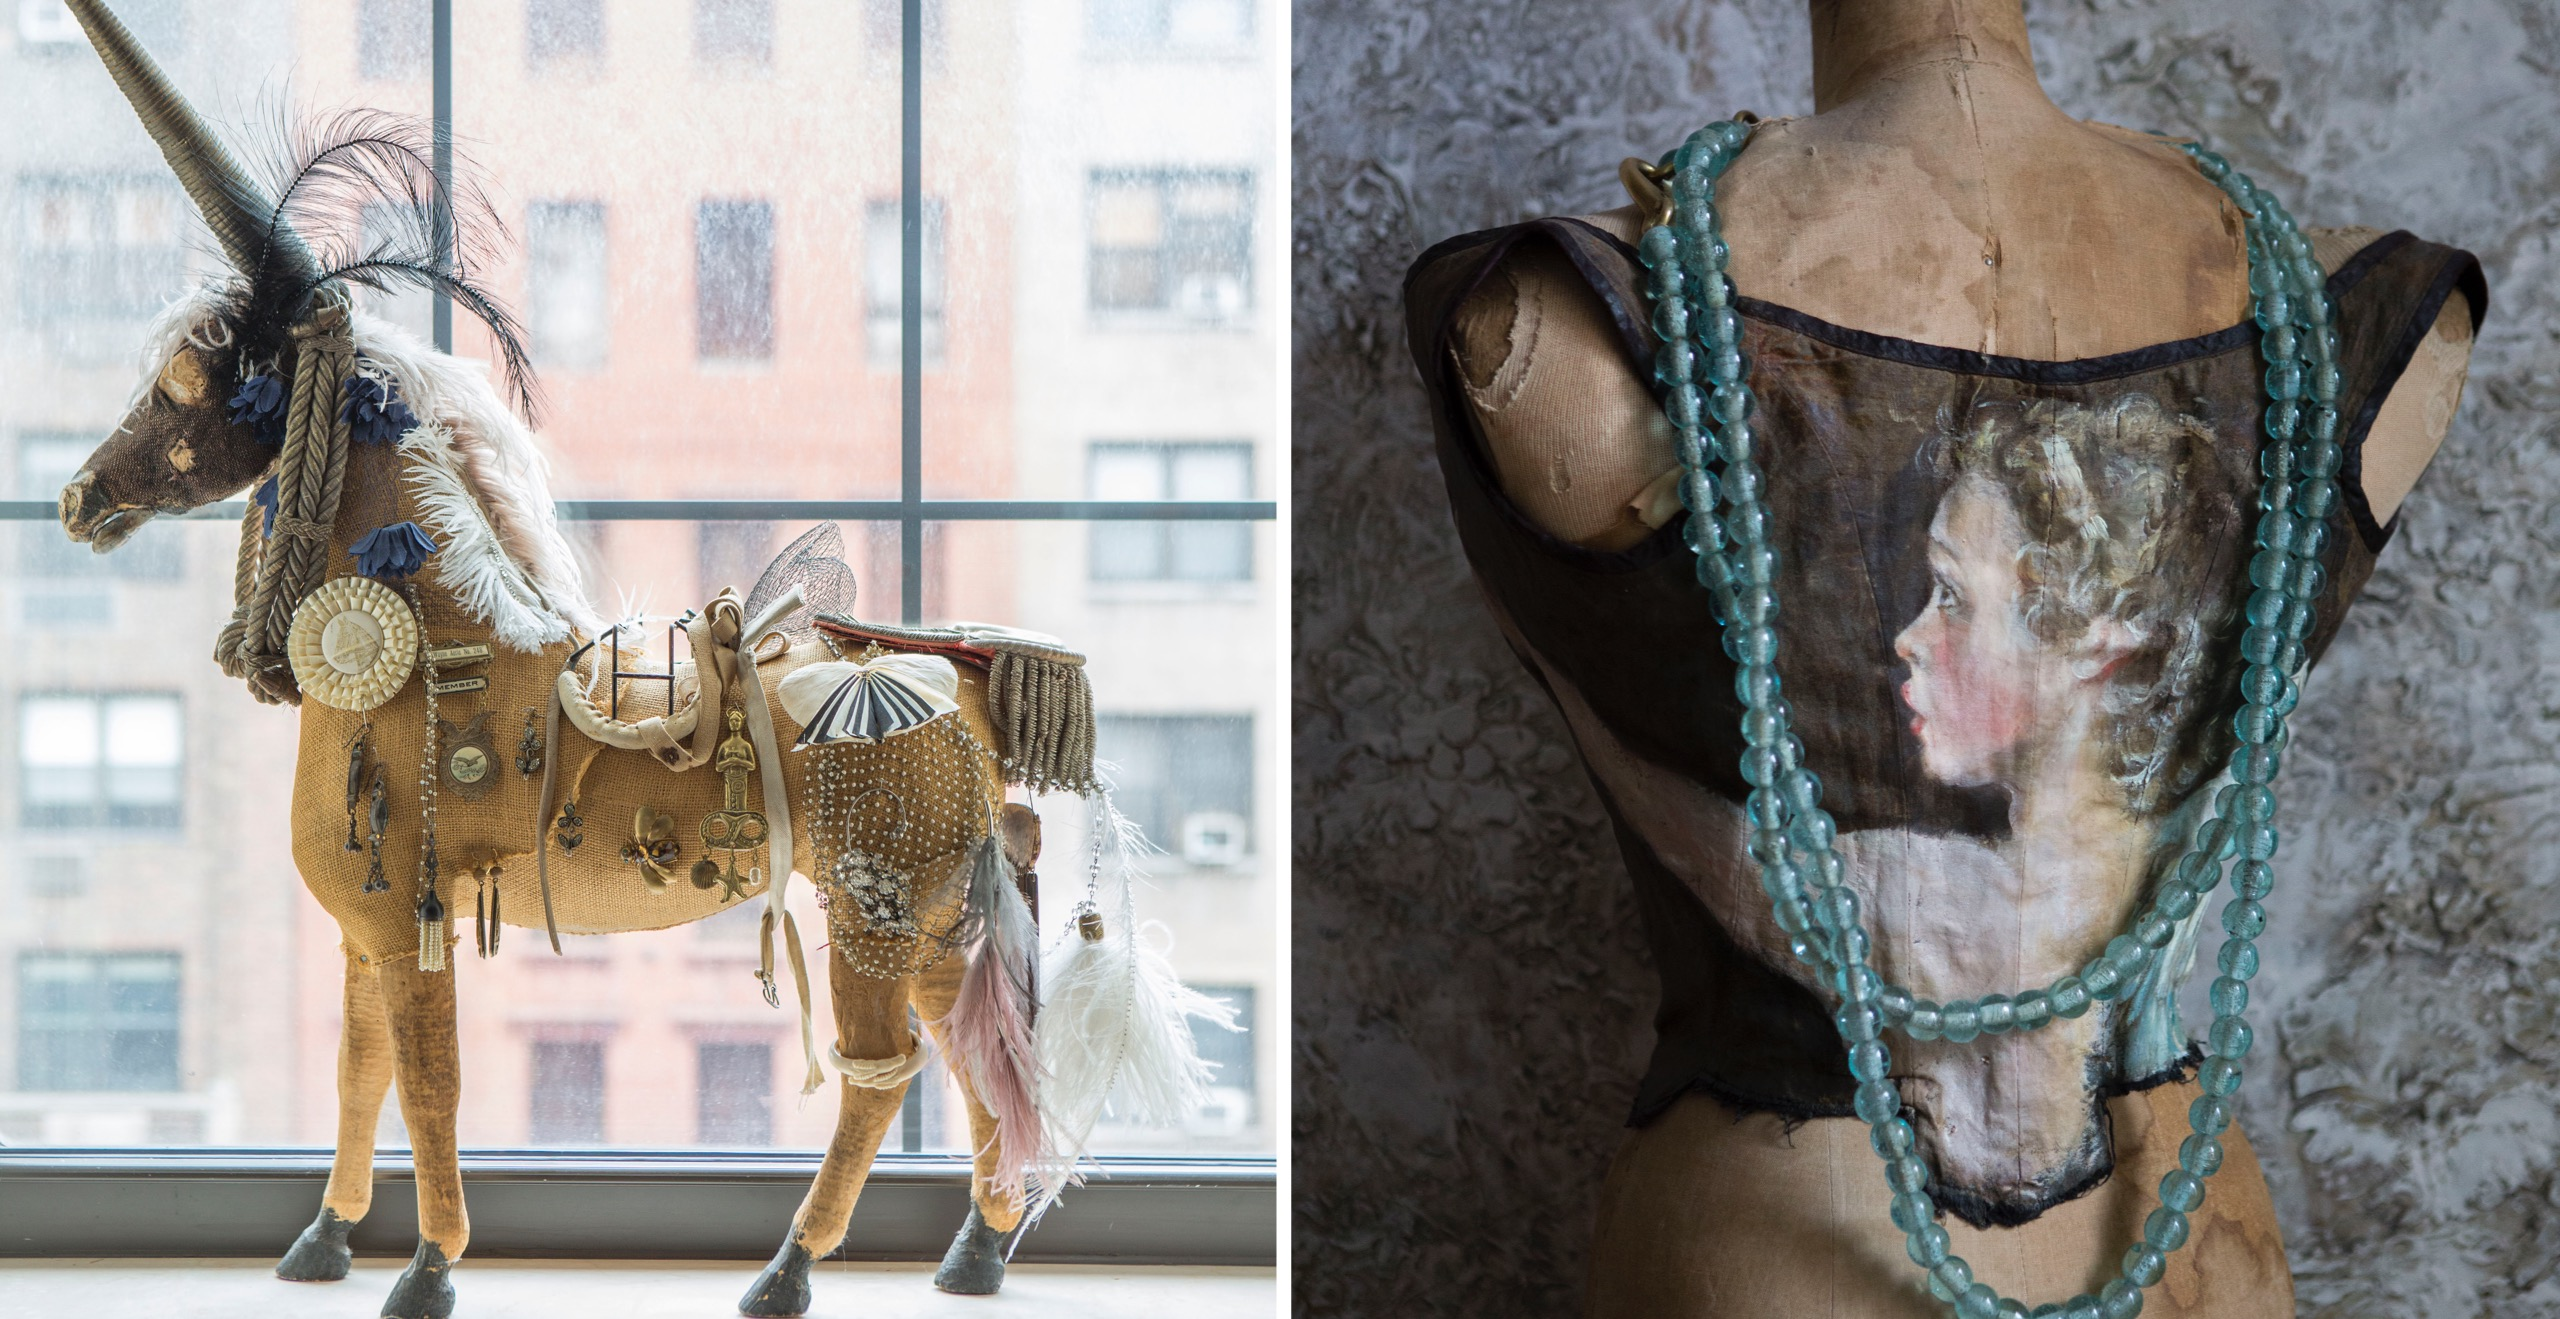 Left to right: Collector and artist Daniela Kamiliotis rescued this tattered horse at a flea market and transformed him into a magical unicorn encrusted with some of her fabulous finds. His tail is a vintage epaulet!; A romantic portrait of a girl by Daniela on a vintage garment adorns an antique dress form framed with sea glass beads